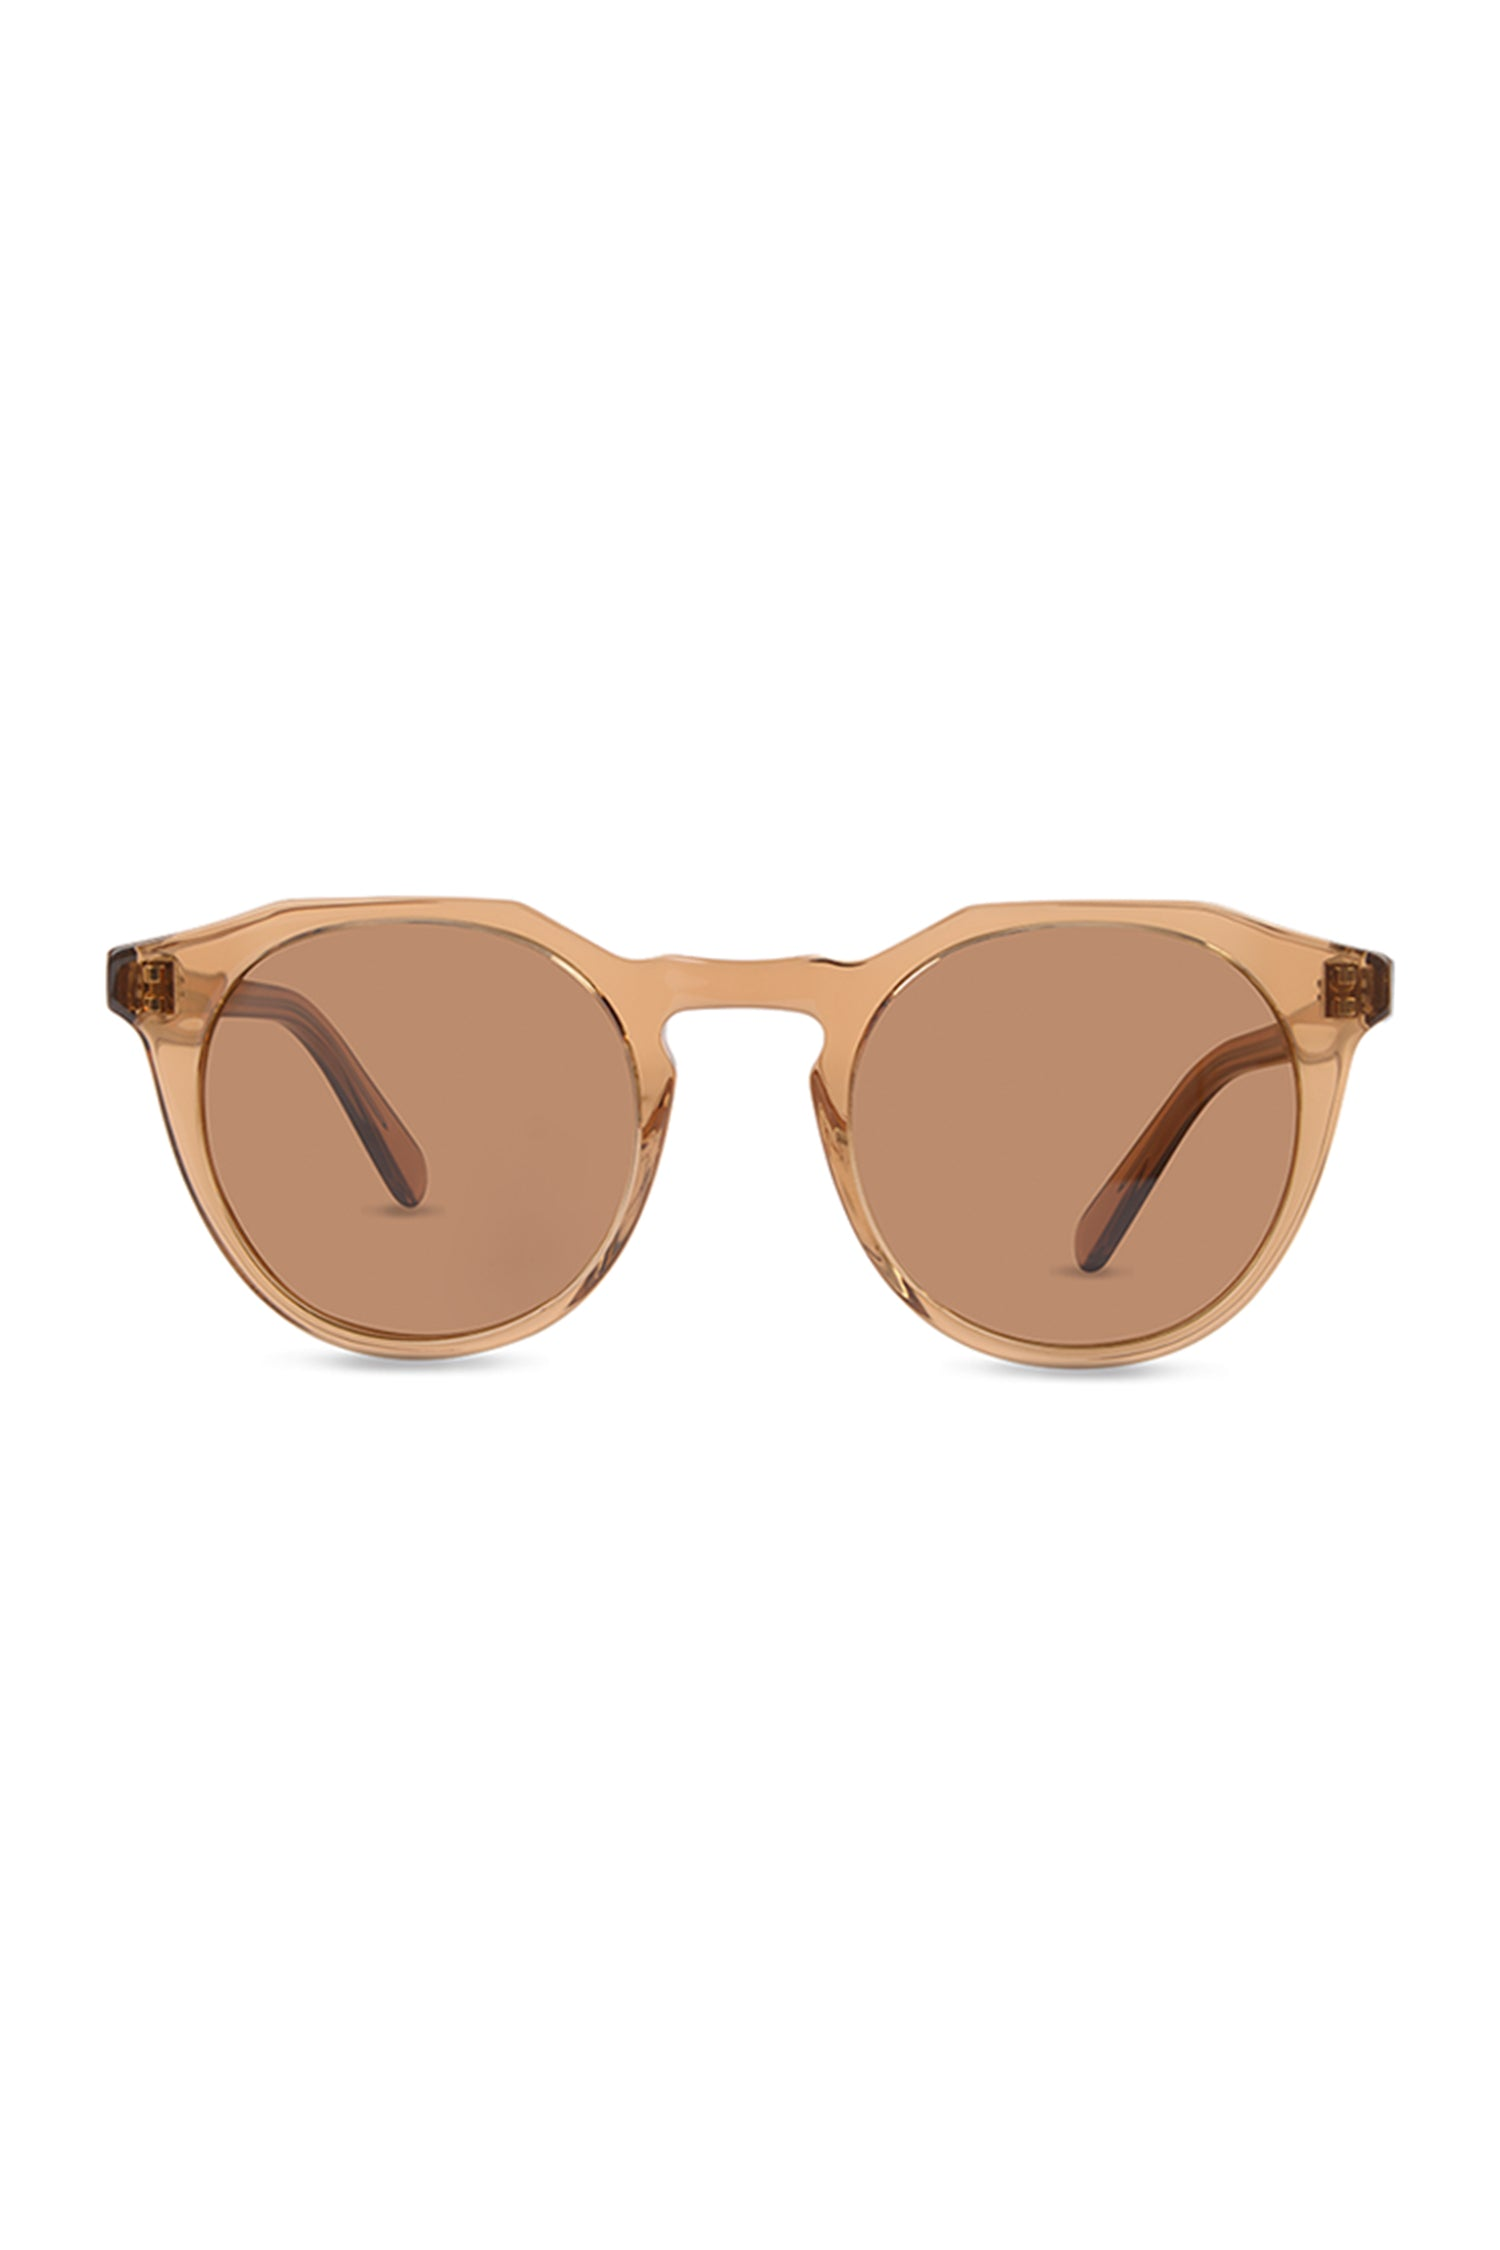 Archer - Butterscotch with Brown Lenses